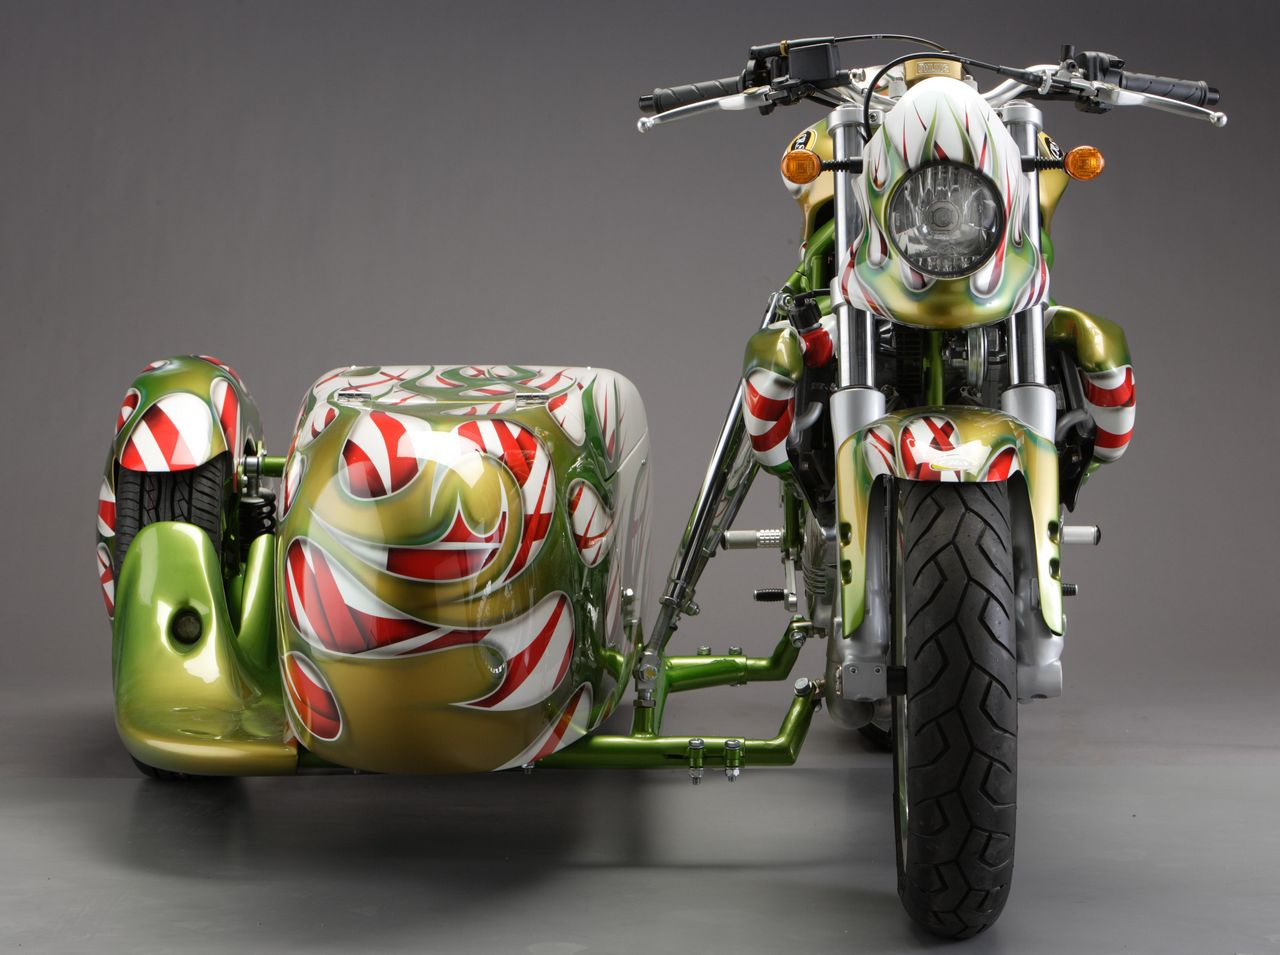 THE BEST OTOMOTIF and WALLPAPER: Italian sidecar design - PPB from CR&S